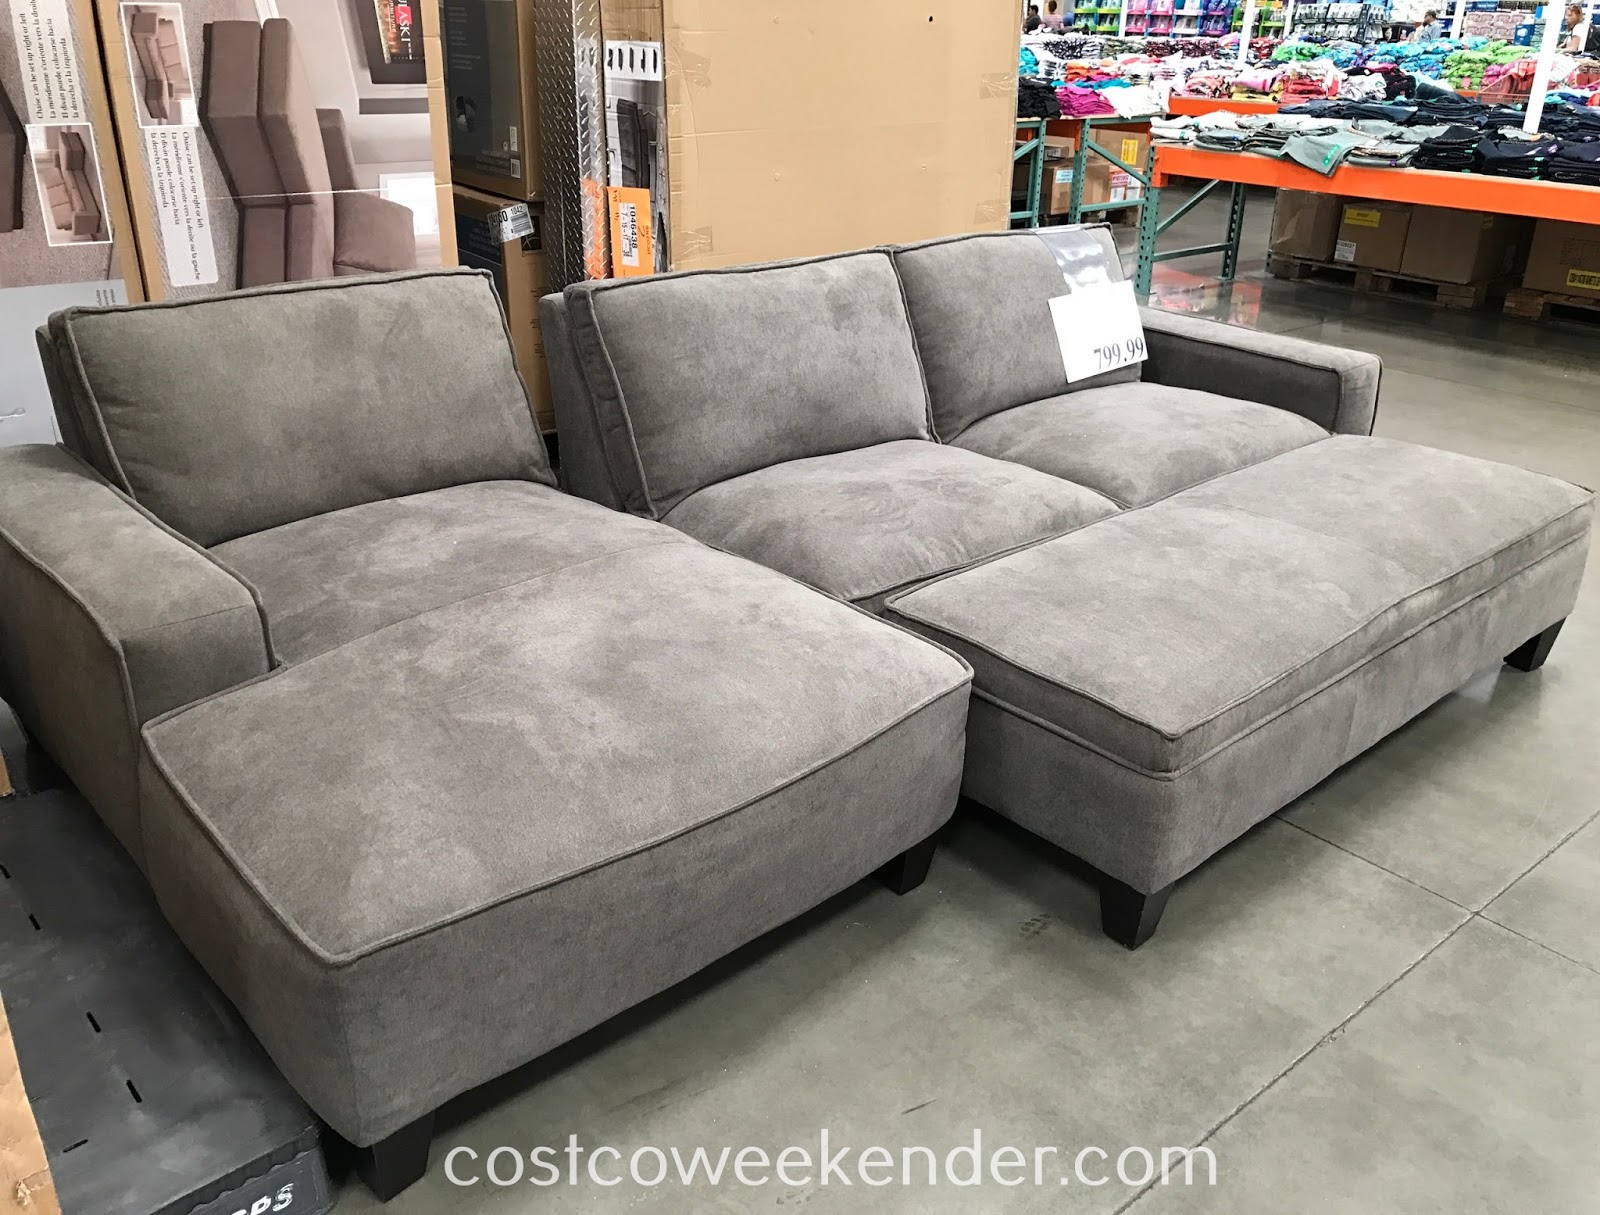 chaise sofa with ottoman costco leather lounge sectional weekender making every weekend a